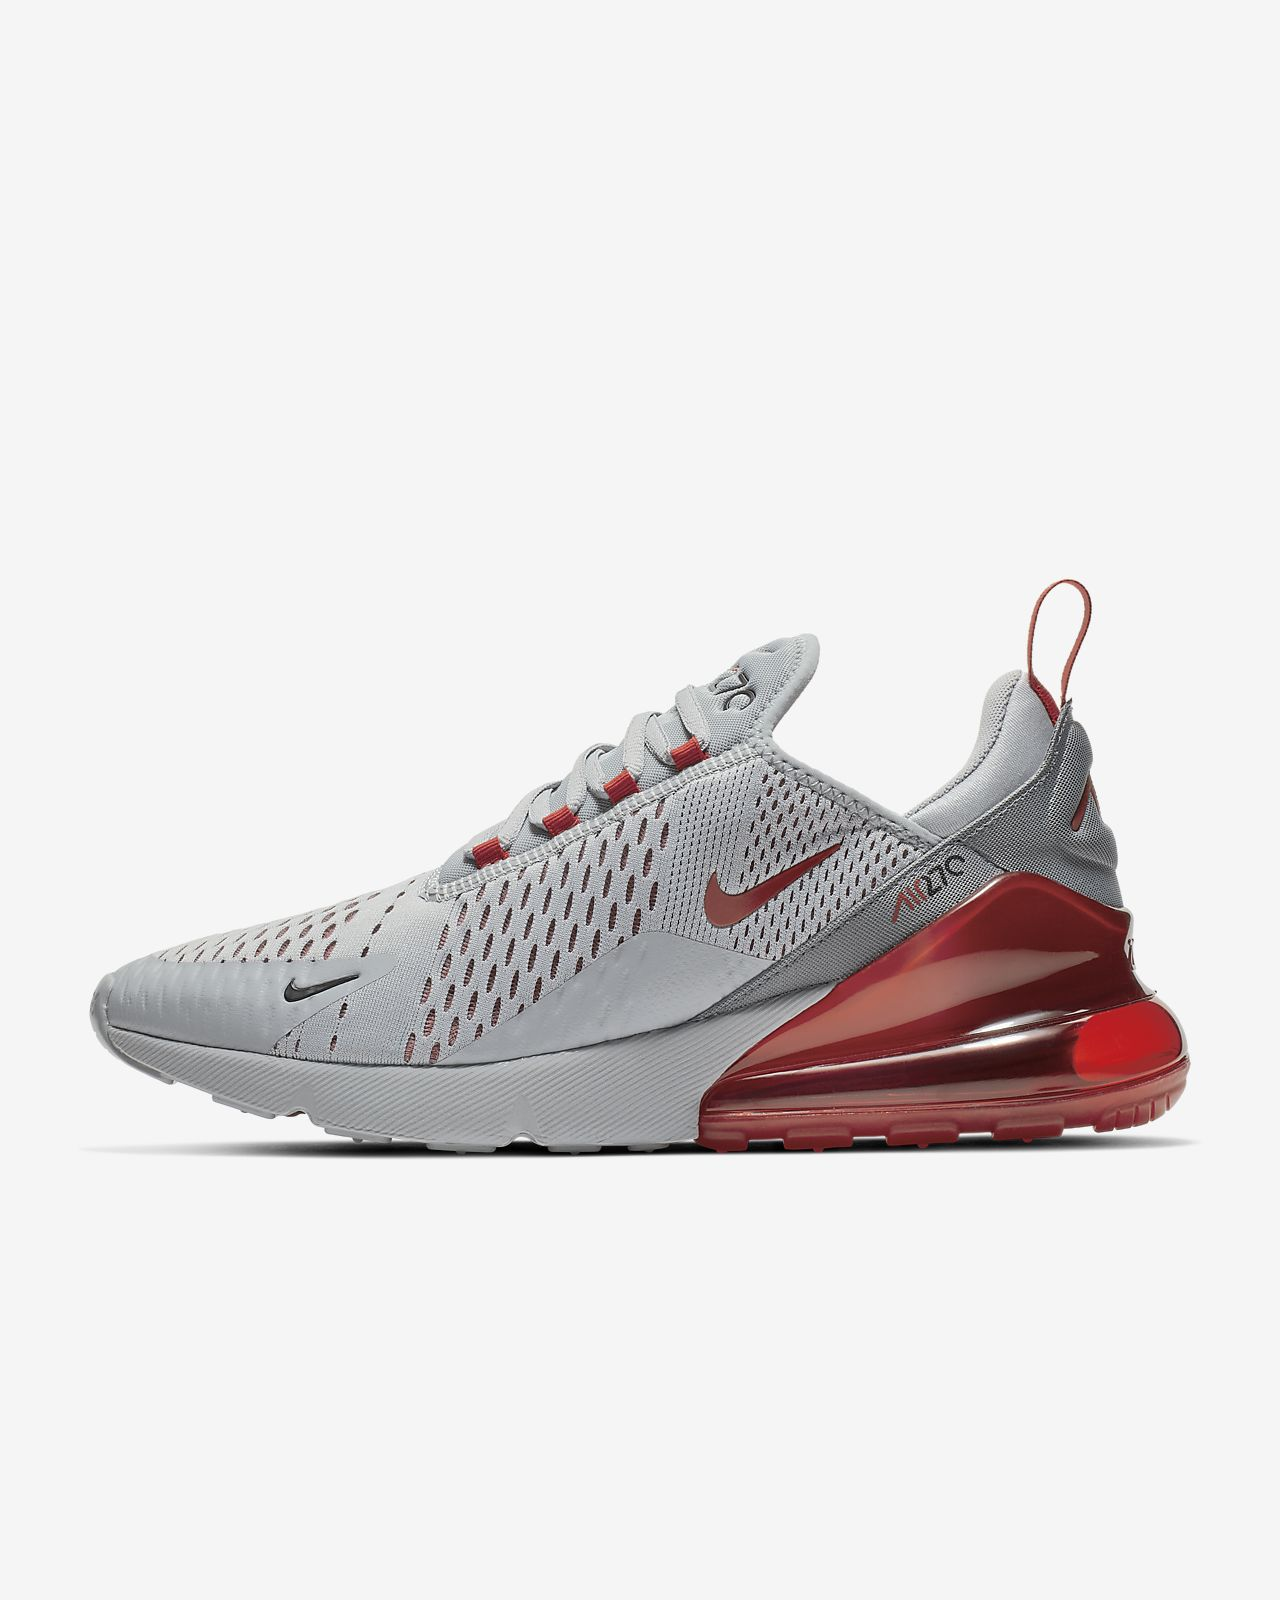 19d404da8d Nike Air Max 270 Men's Shoe. Nike.com GB